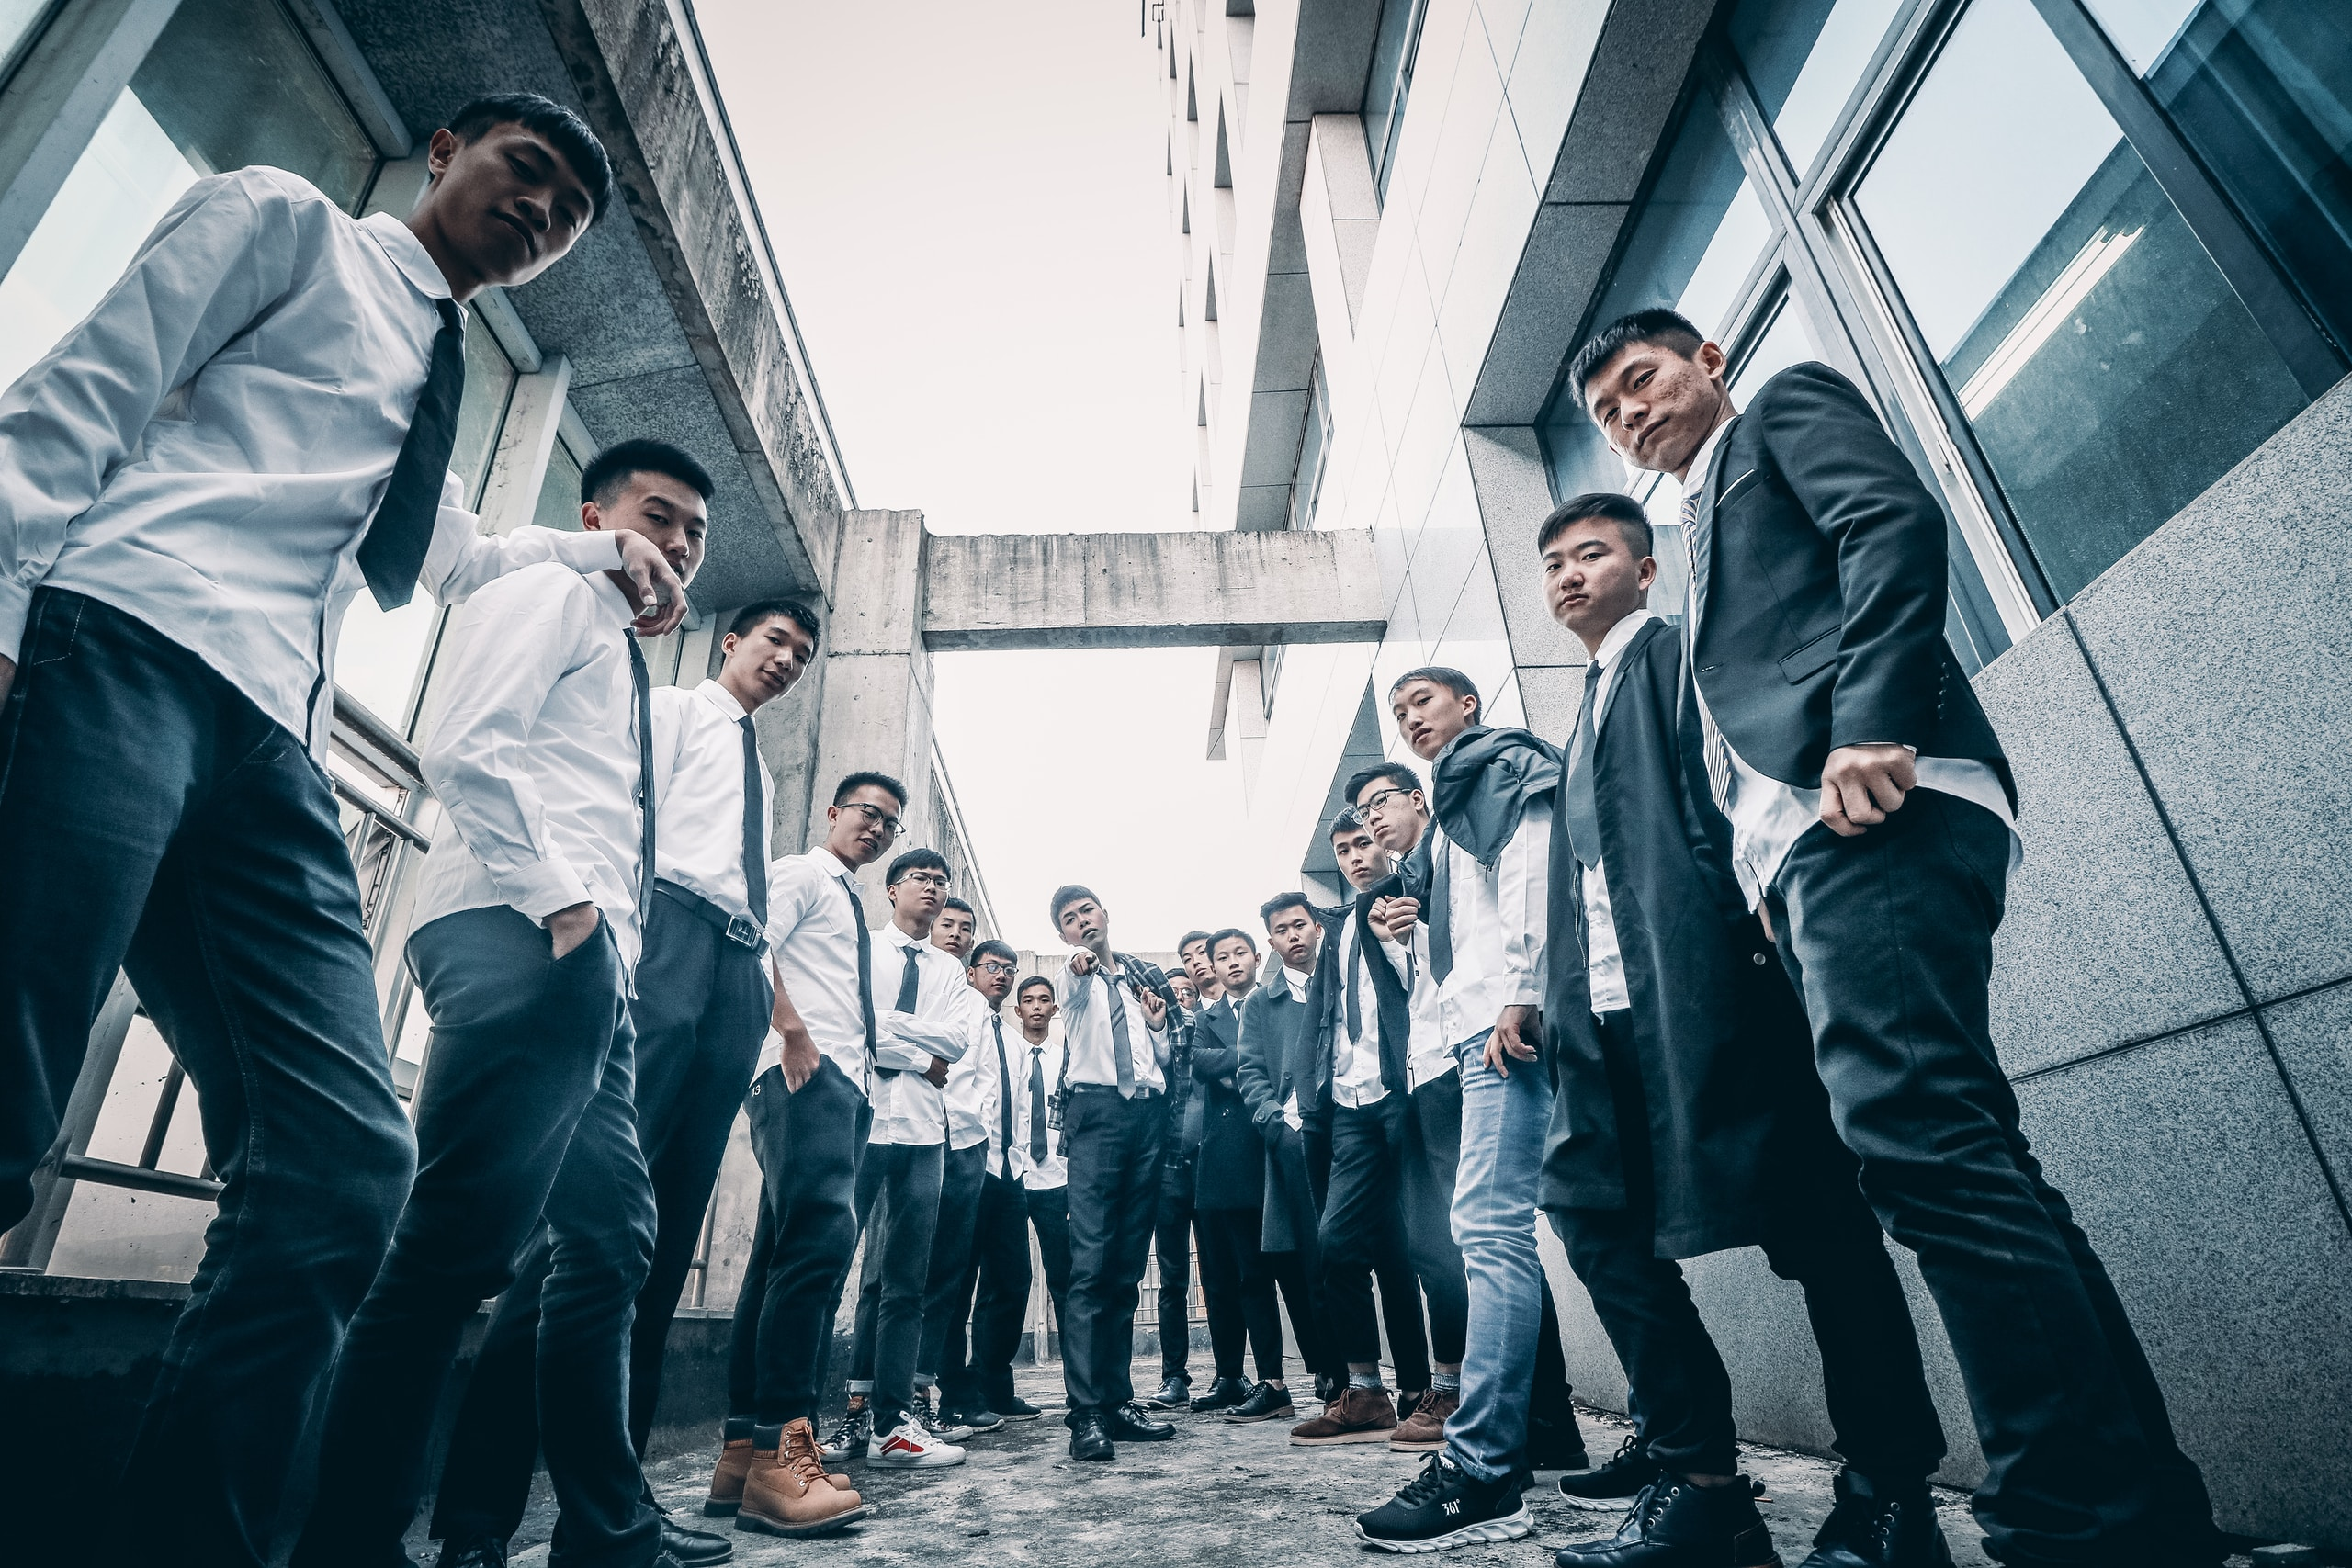 group of students outside building